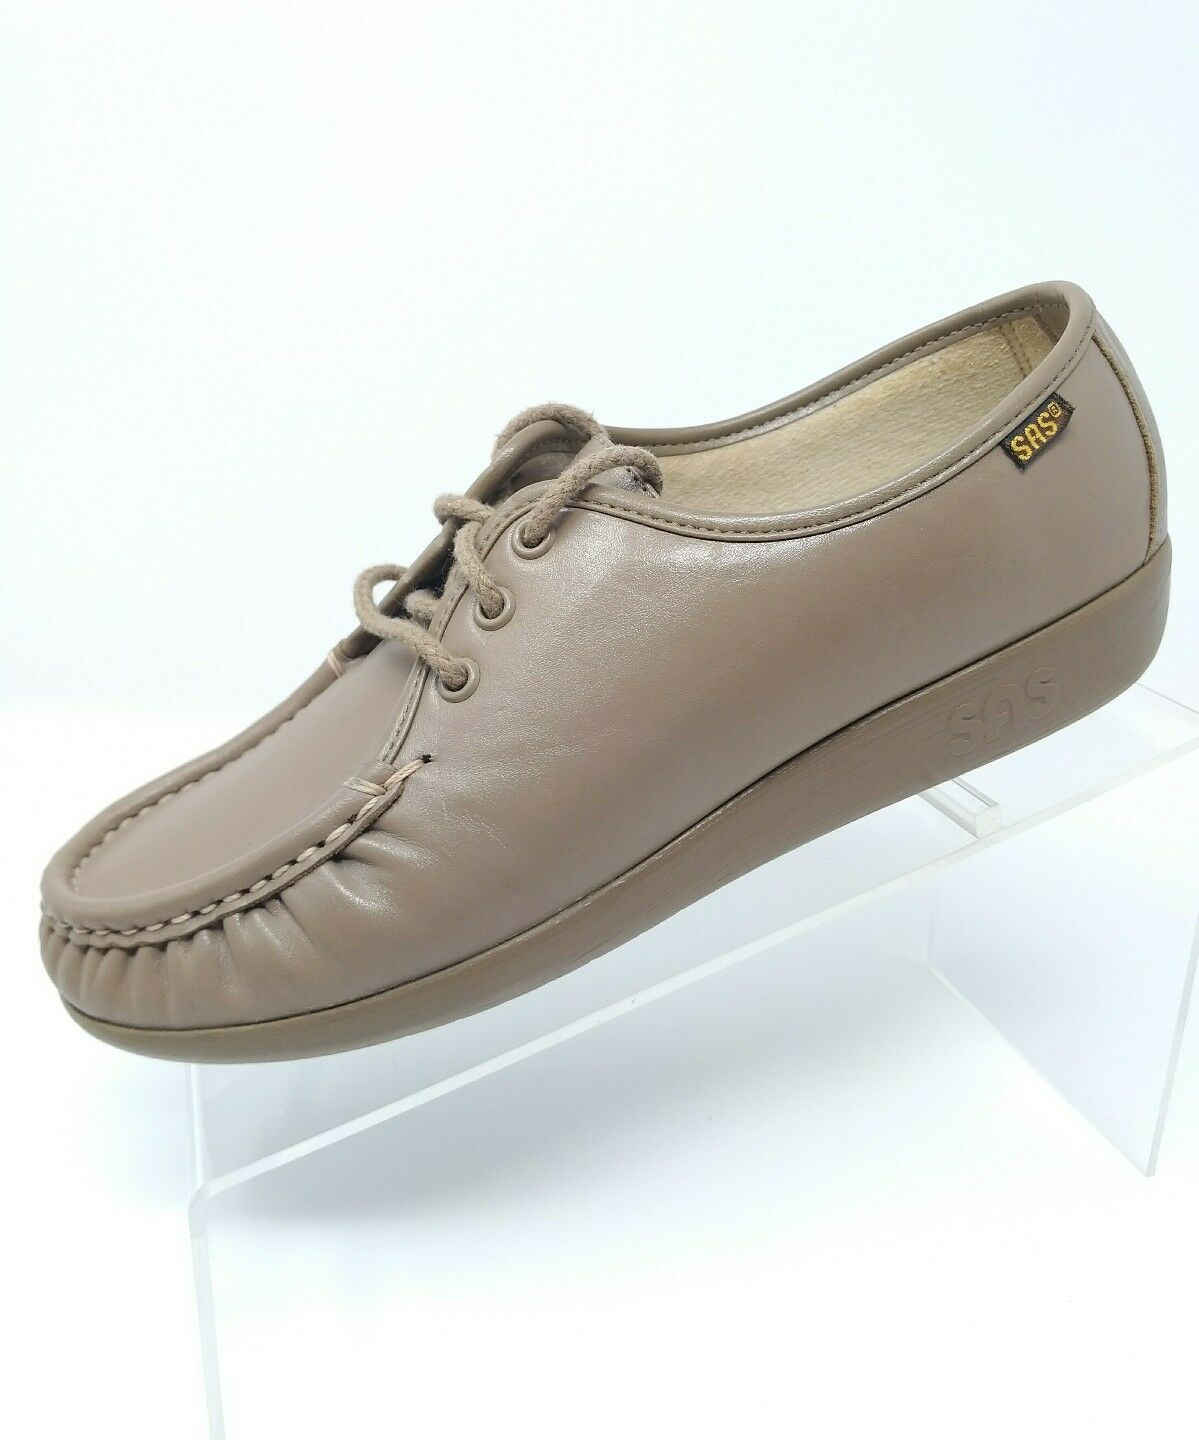 SAS Womens Lace Up Comfort shoes Sz 8 M Beige Nude Leather Casual Career Loafers